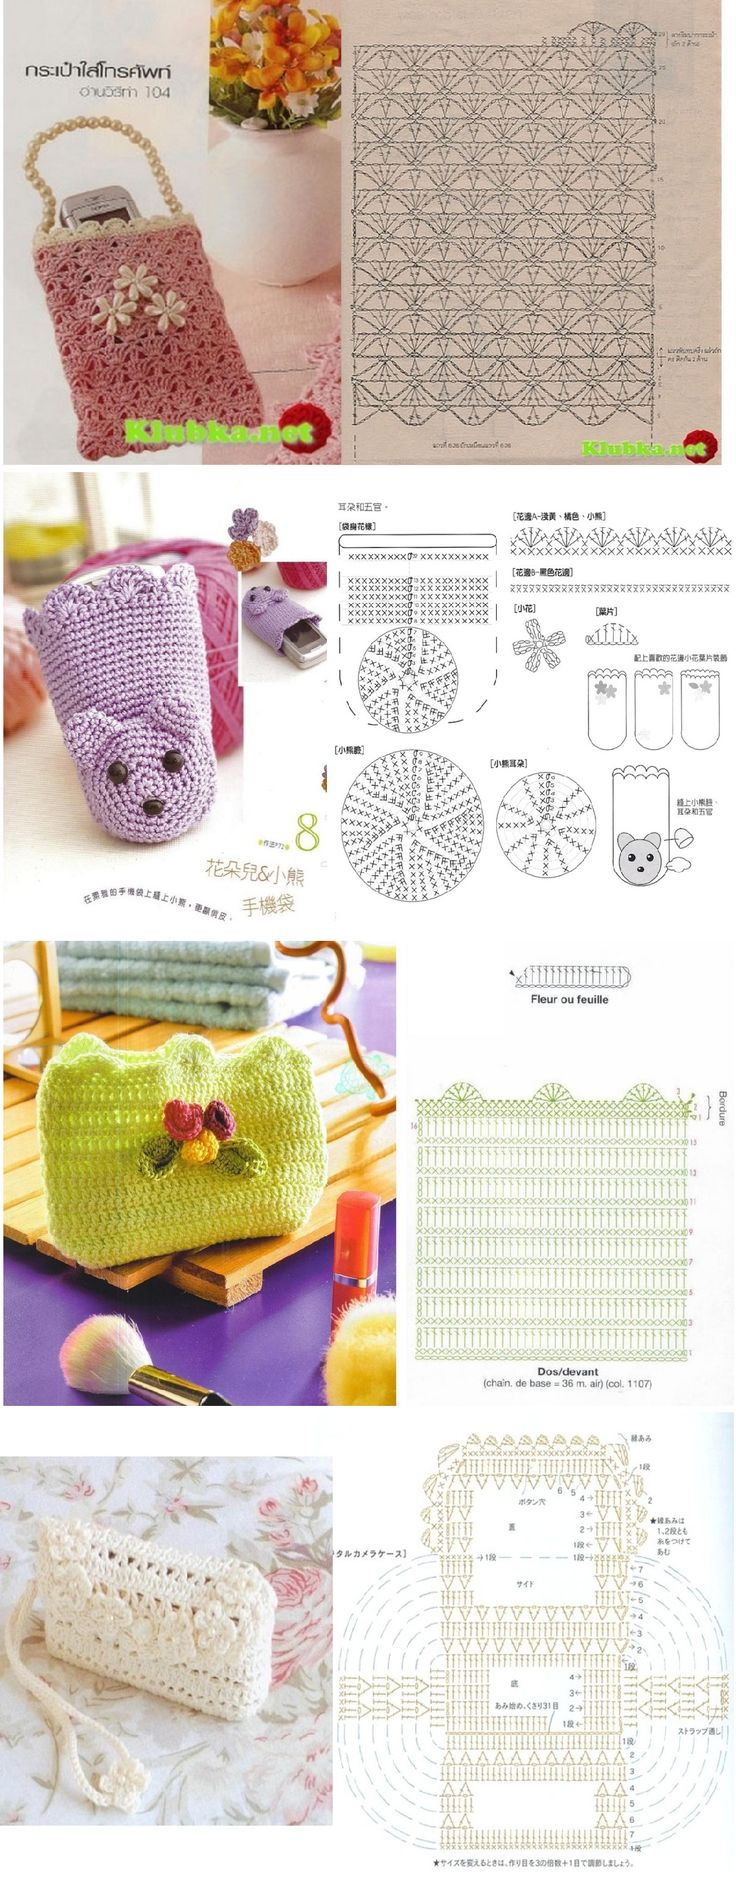 221 best cocina crochet images on Pinterest | Patchwork, Crafts and ...